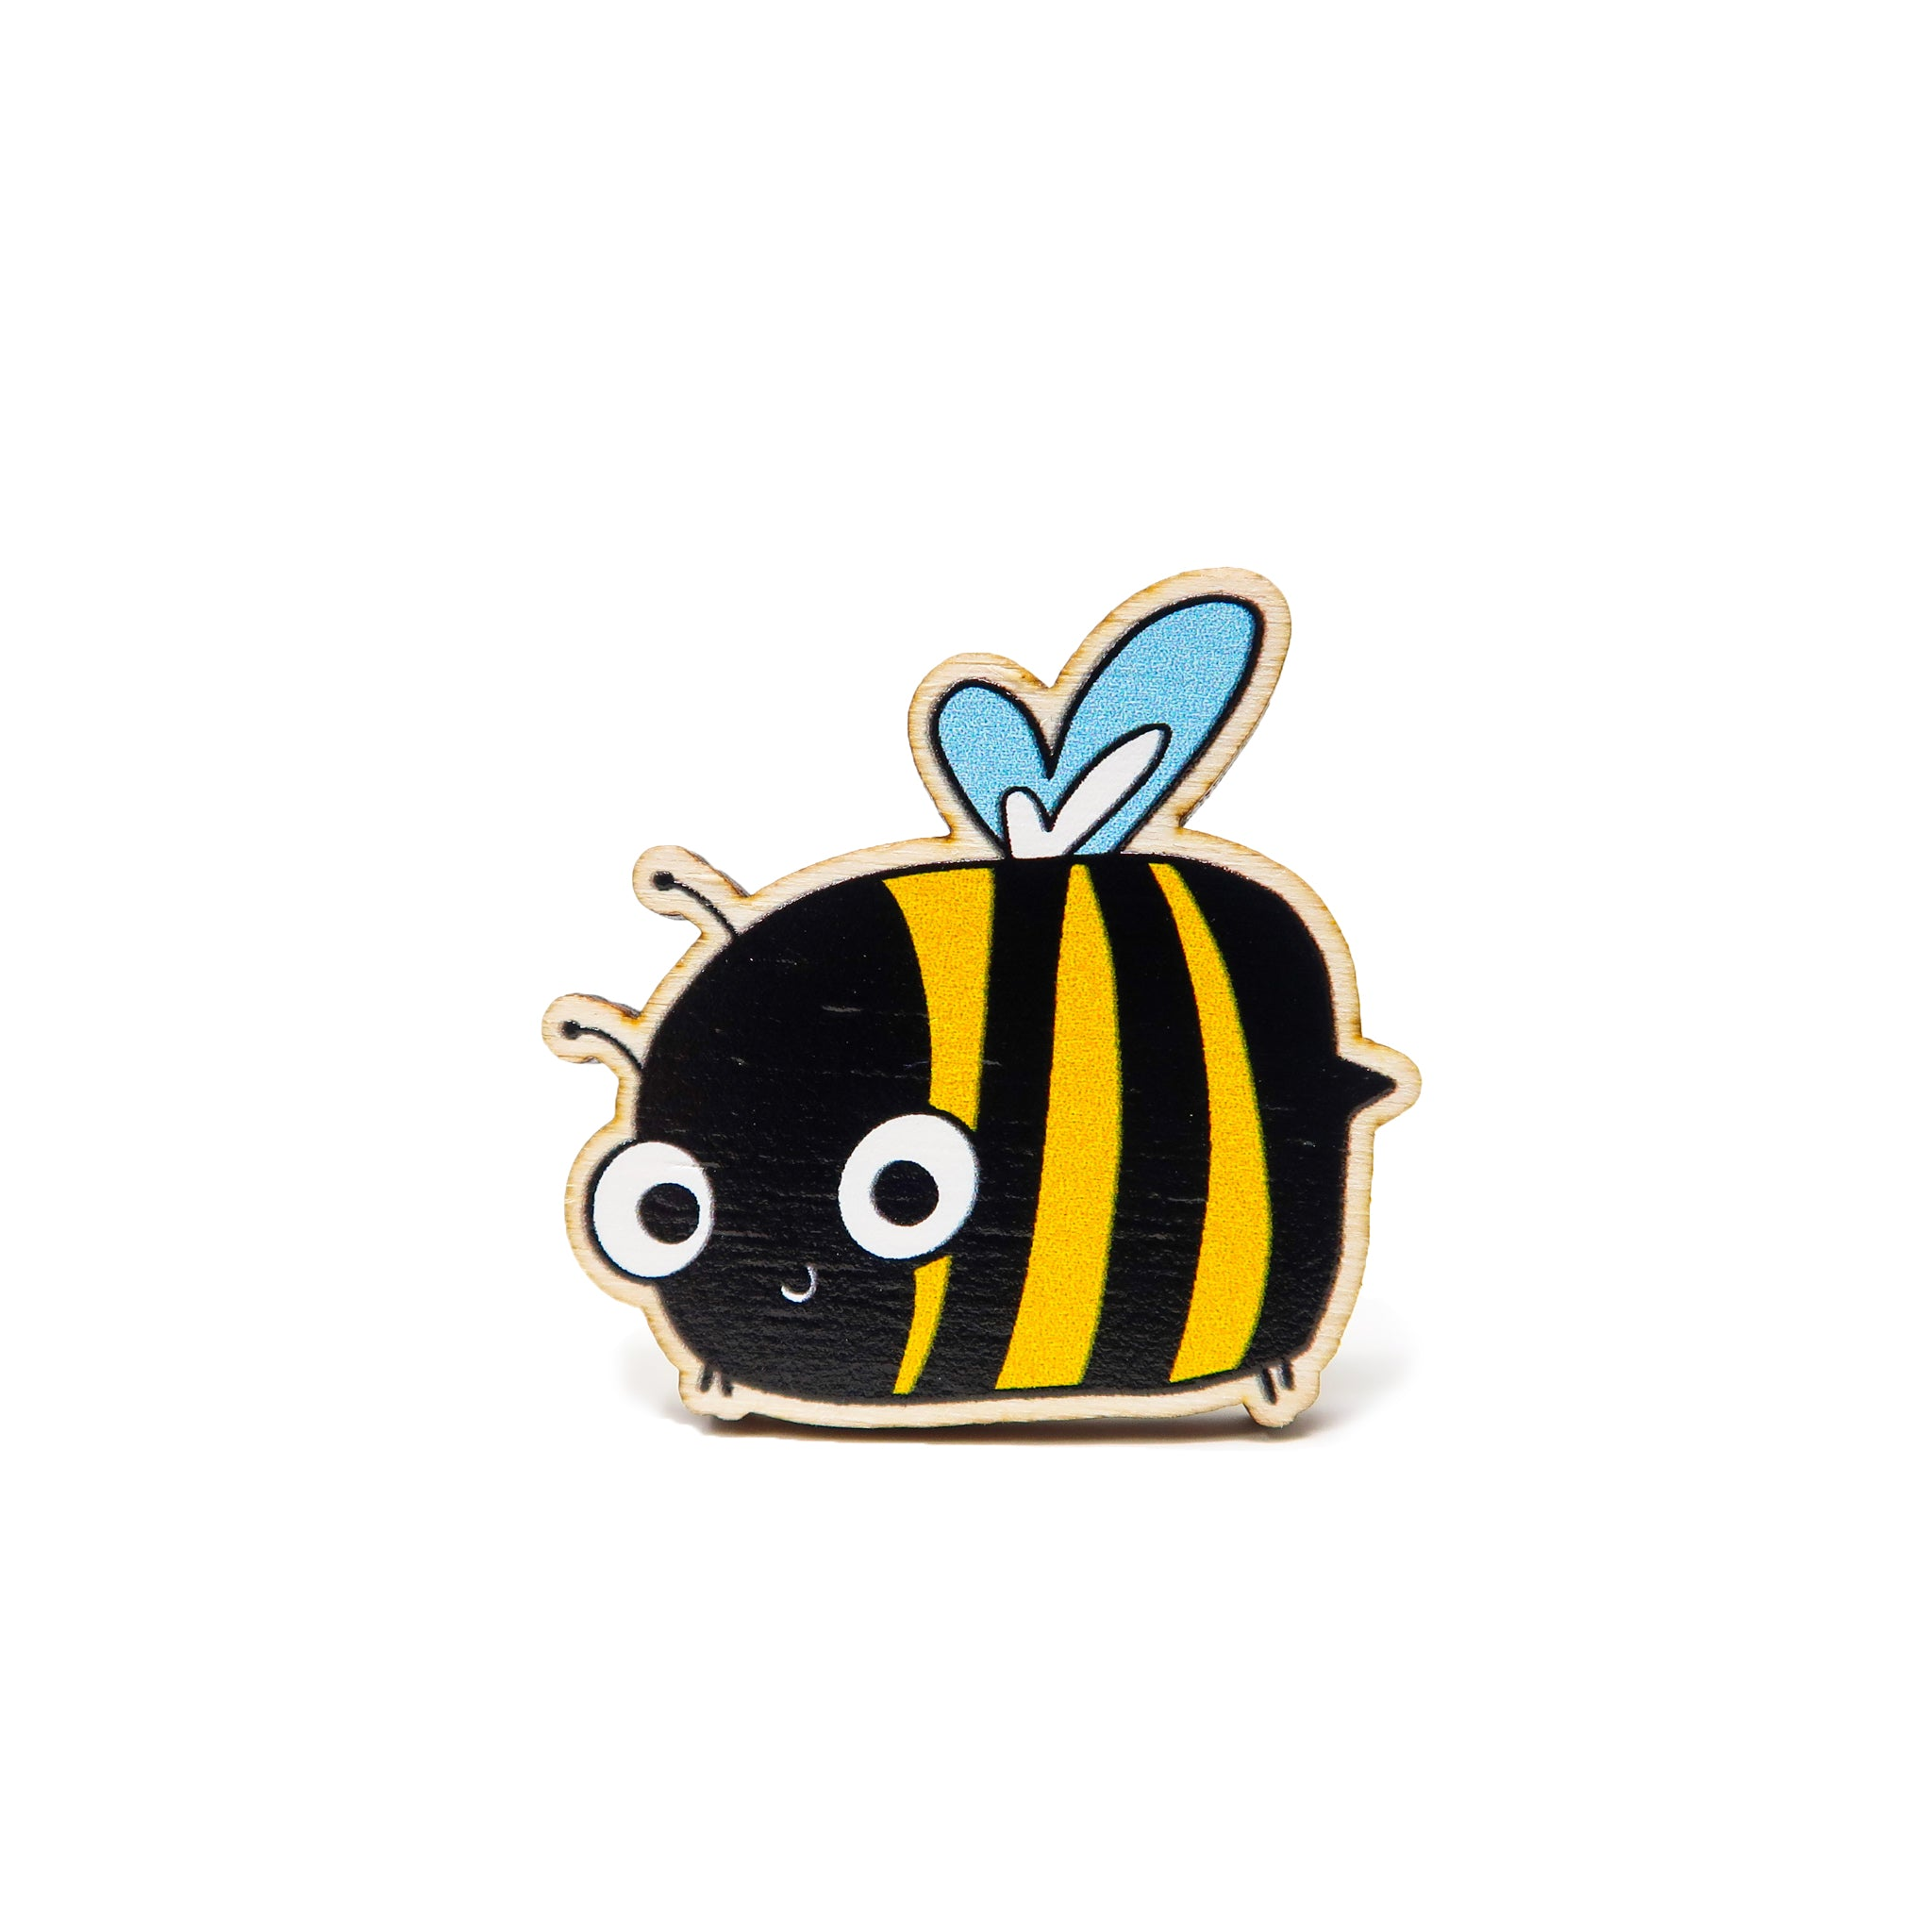 Wooden Bumble bee badge - Hofficraft